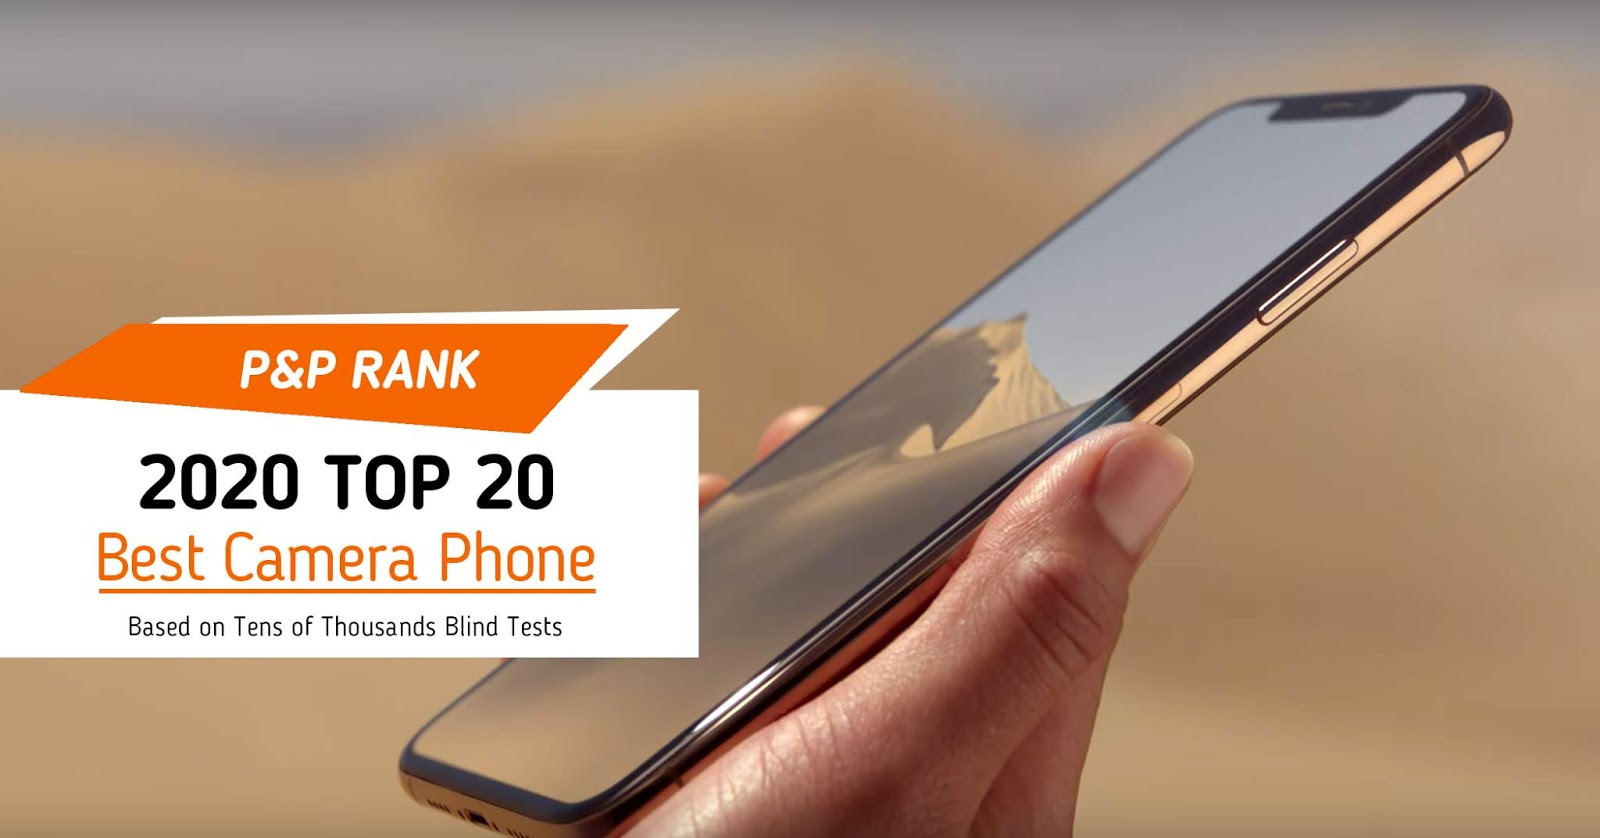 The P&P Rank offers Best Camera Phone and Best Selfie Camera Top 20 based on tens of thousands blind tests